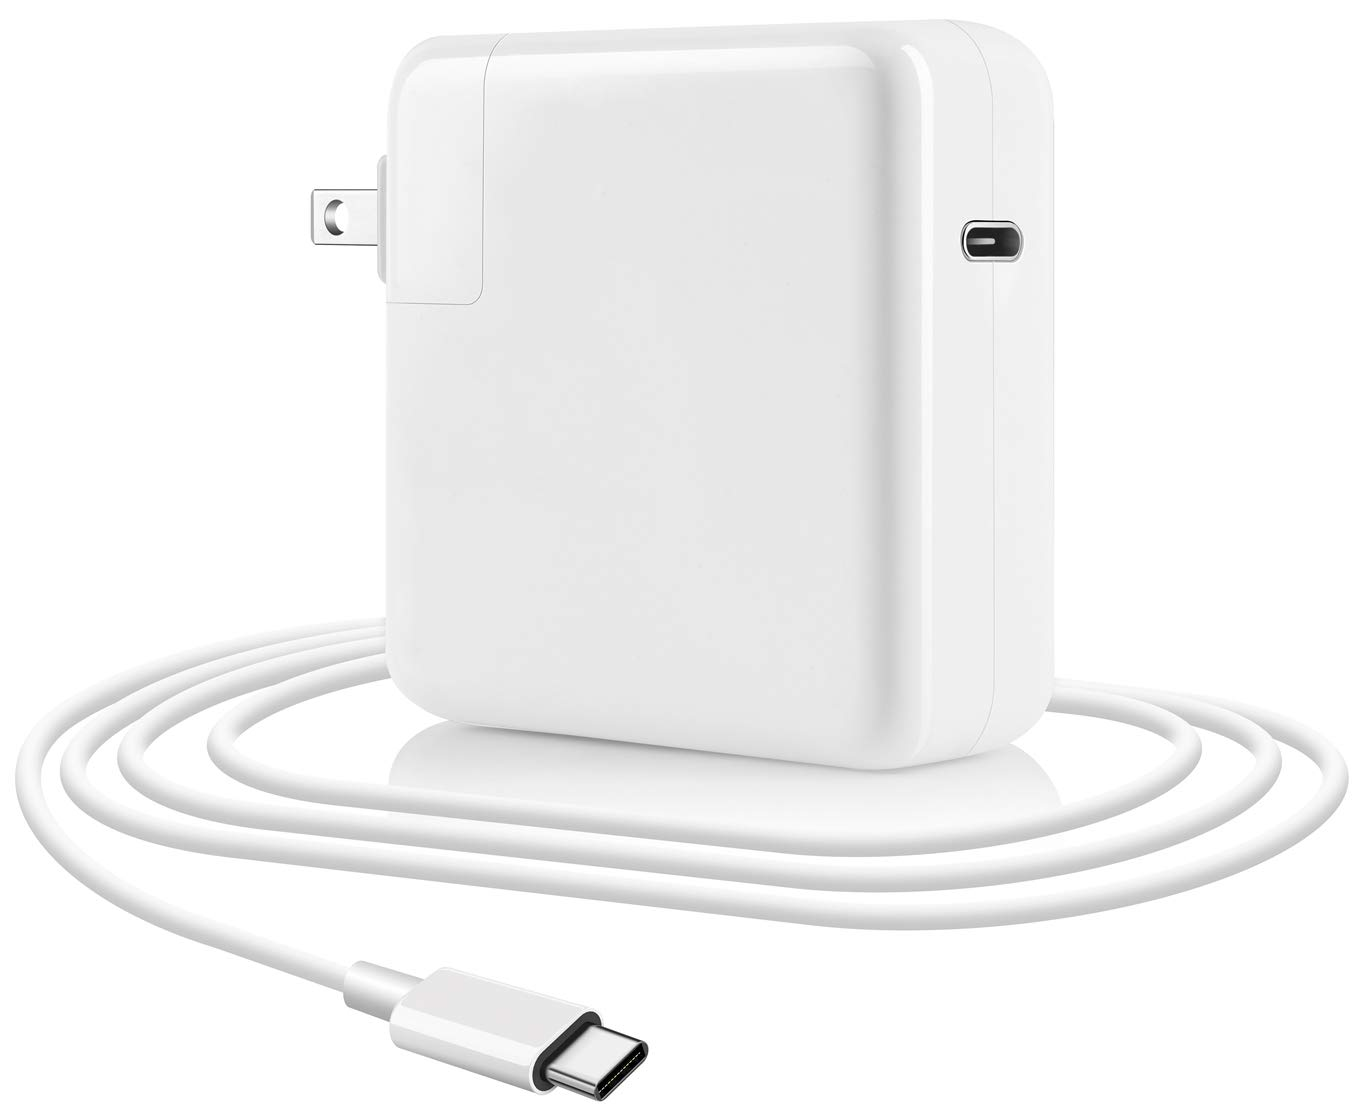 61w USB C Power Adapter Type C Wall Charger Compatible with MacBook Pro 13 Thunderbolt New MacBook Air Charger 2018 2017 2016 Mac.